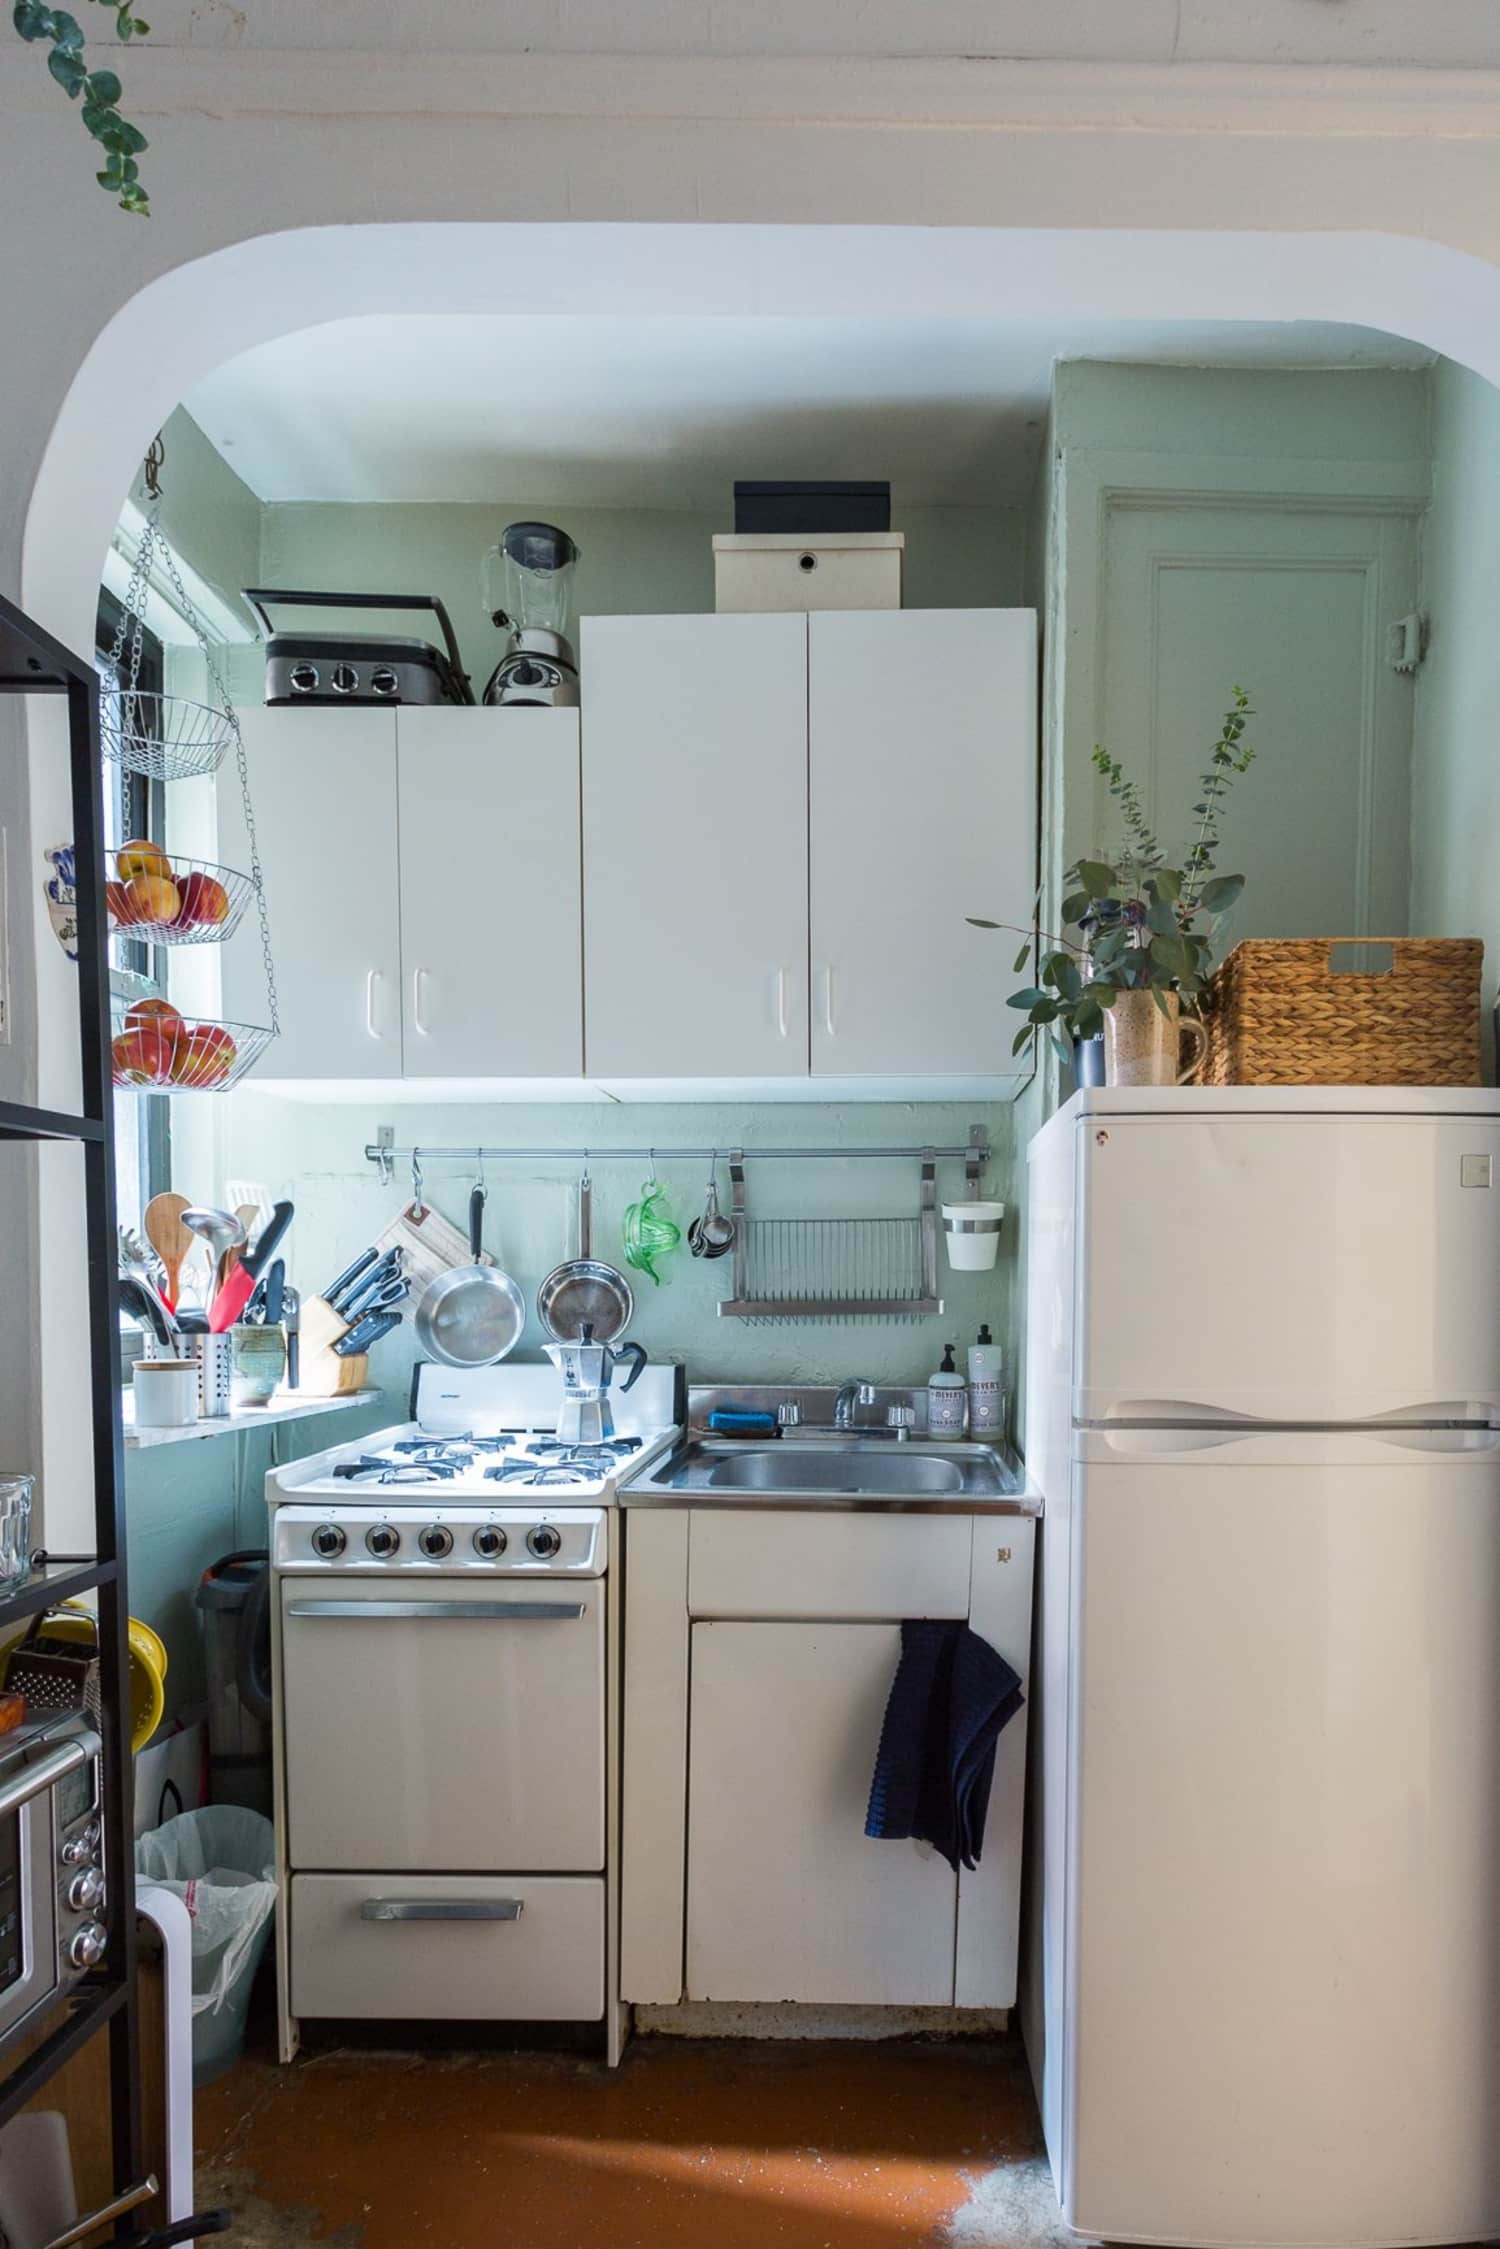 10 Genius Tips for Cooking in a Tiny Kitchen